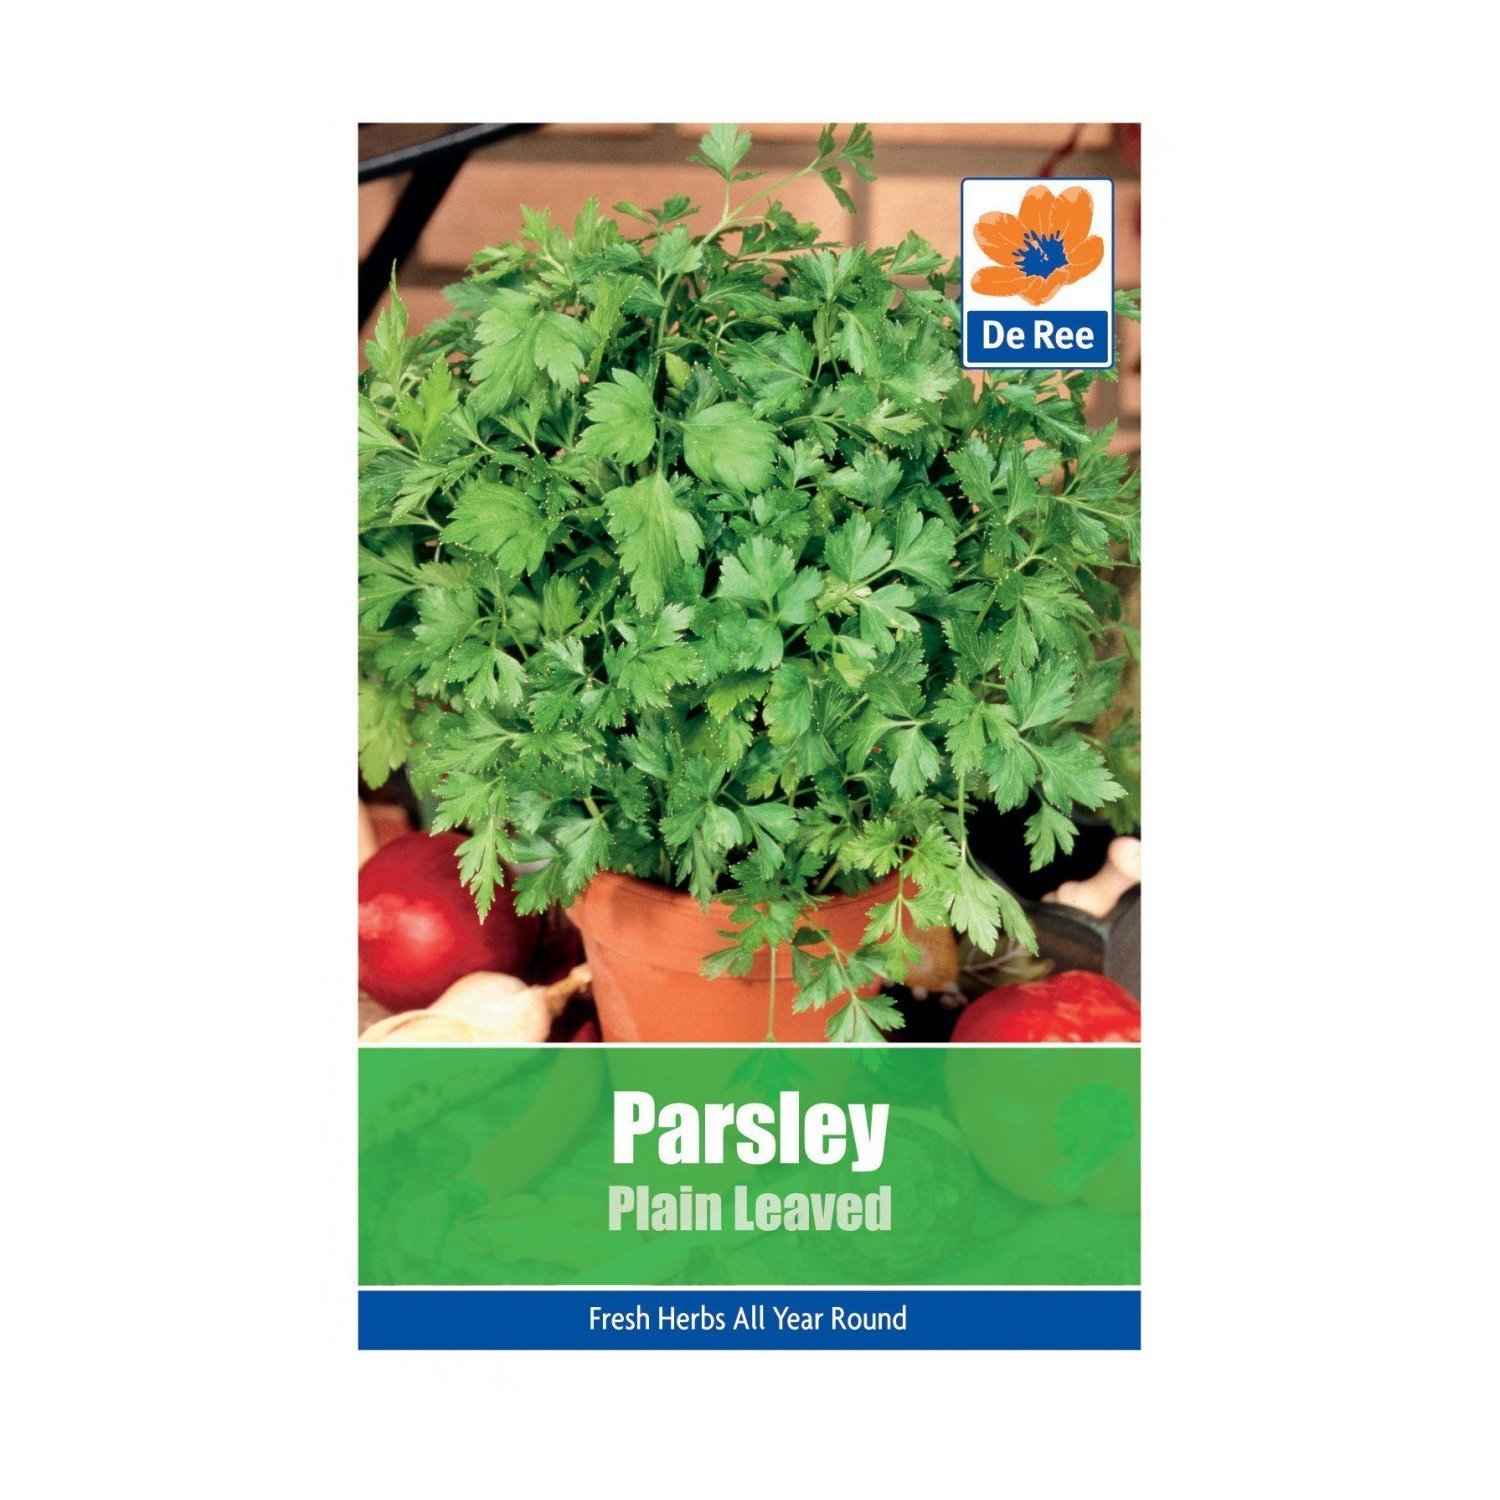 Parsley Plain Leaved Seeds Bulbs and Seeds Direct